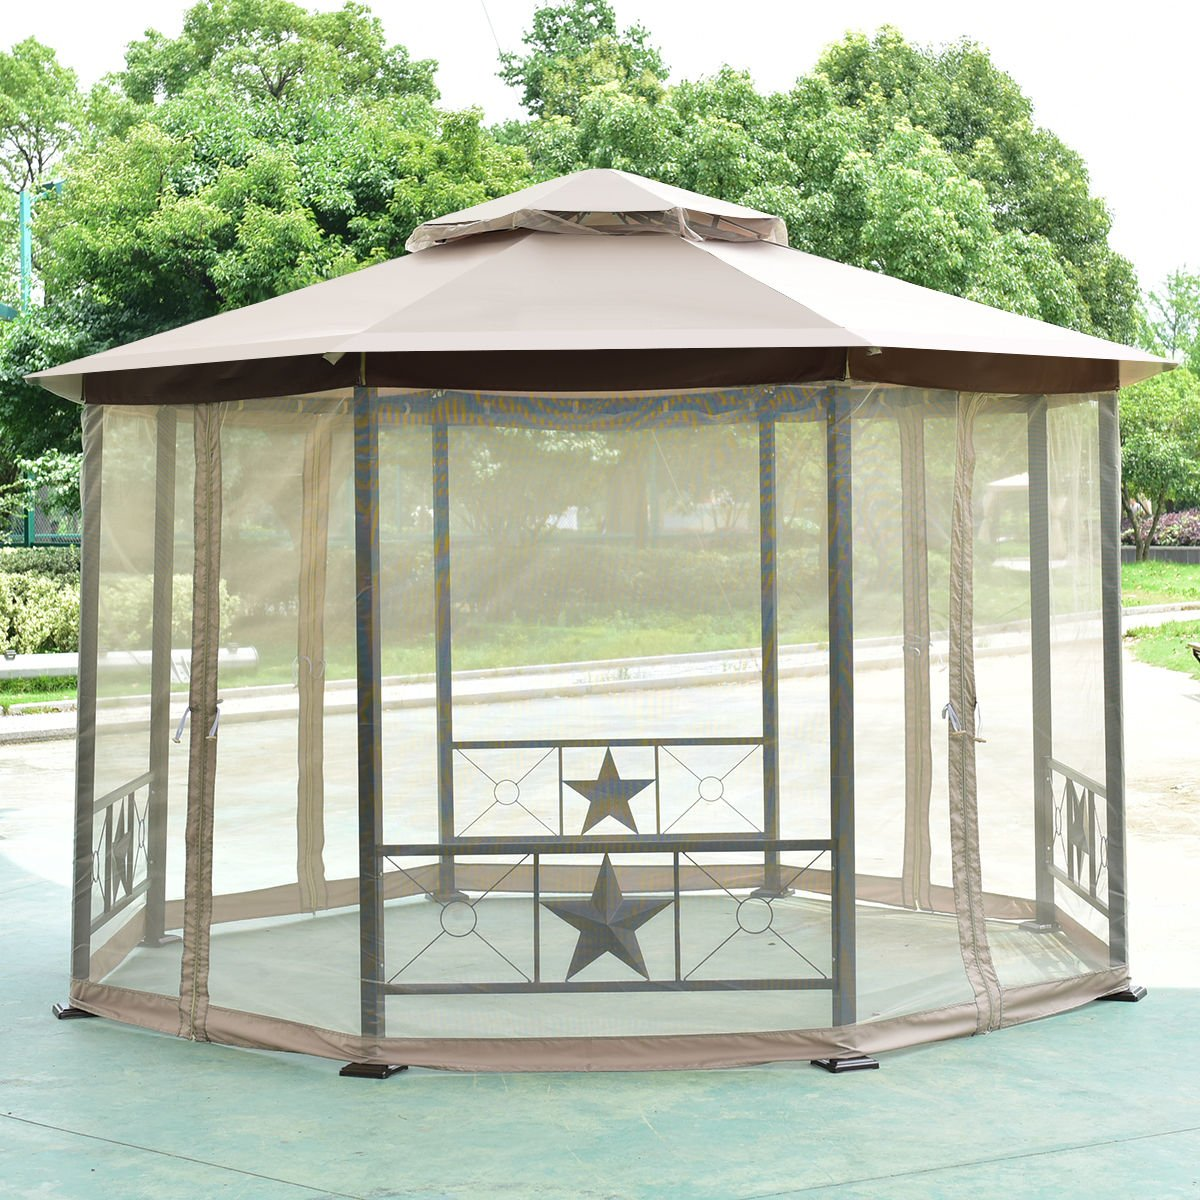 Tangkula Gazebo 2-Tier 12 5ft Octagon Outdoor Patio Fully Enclosed